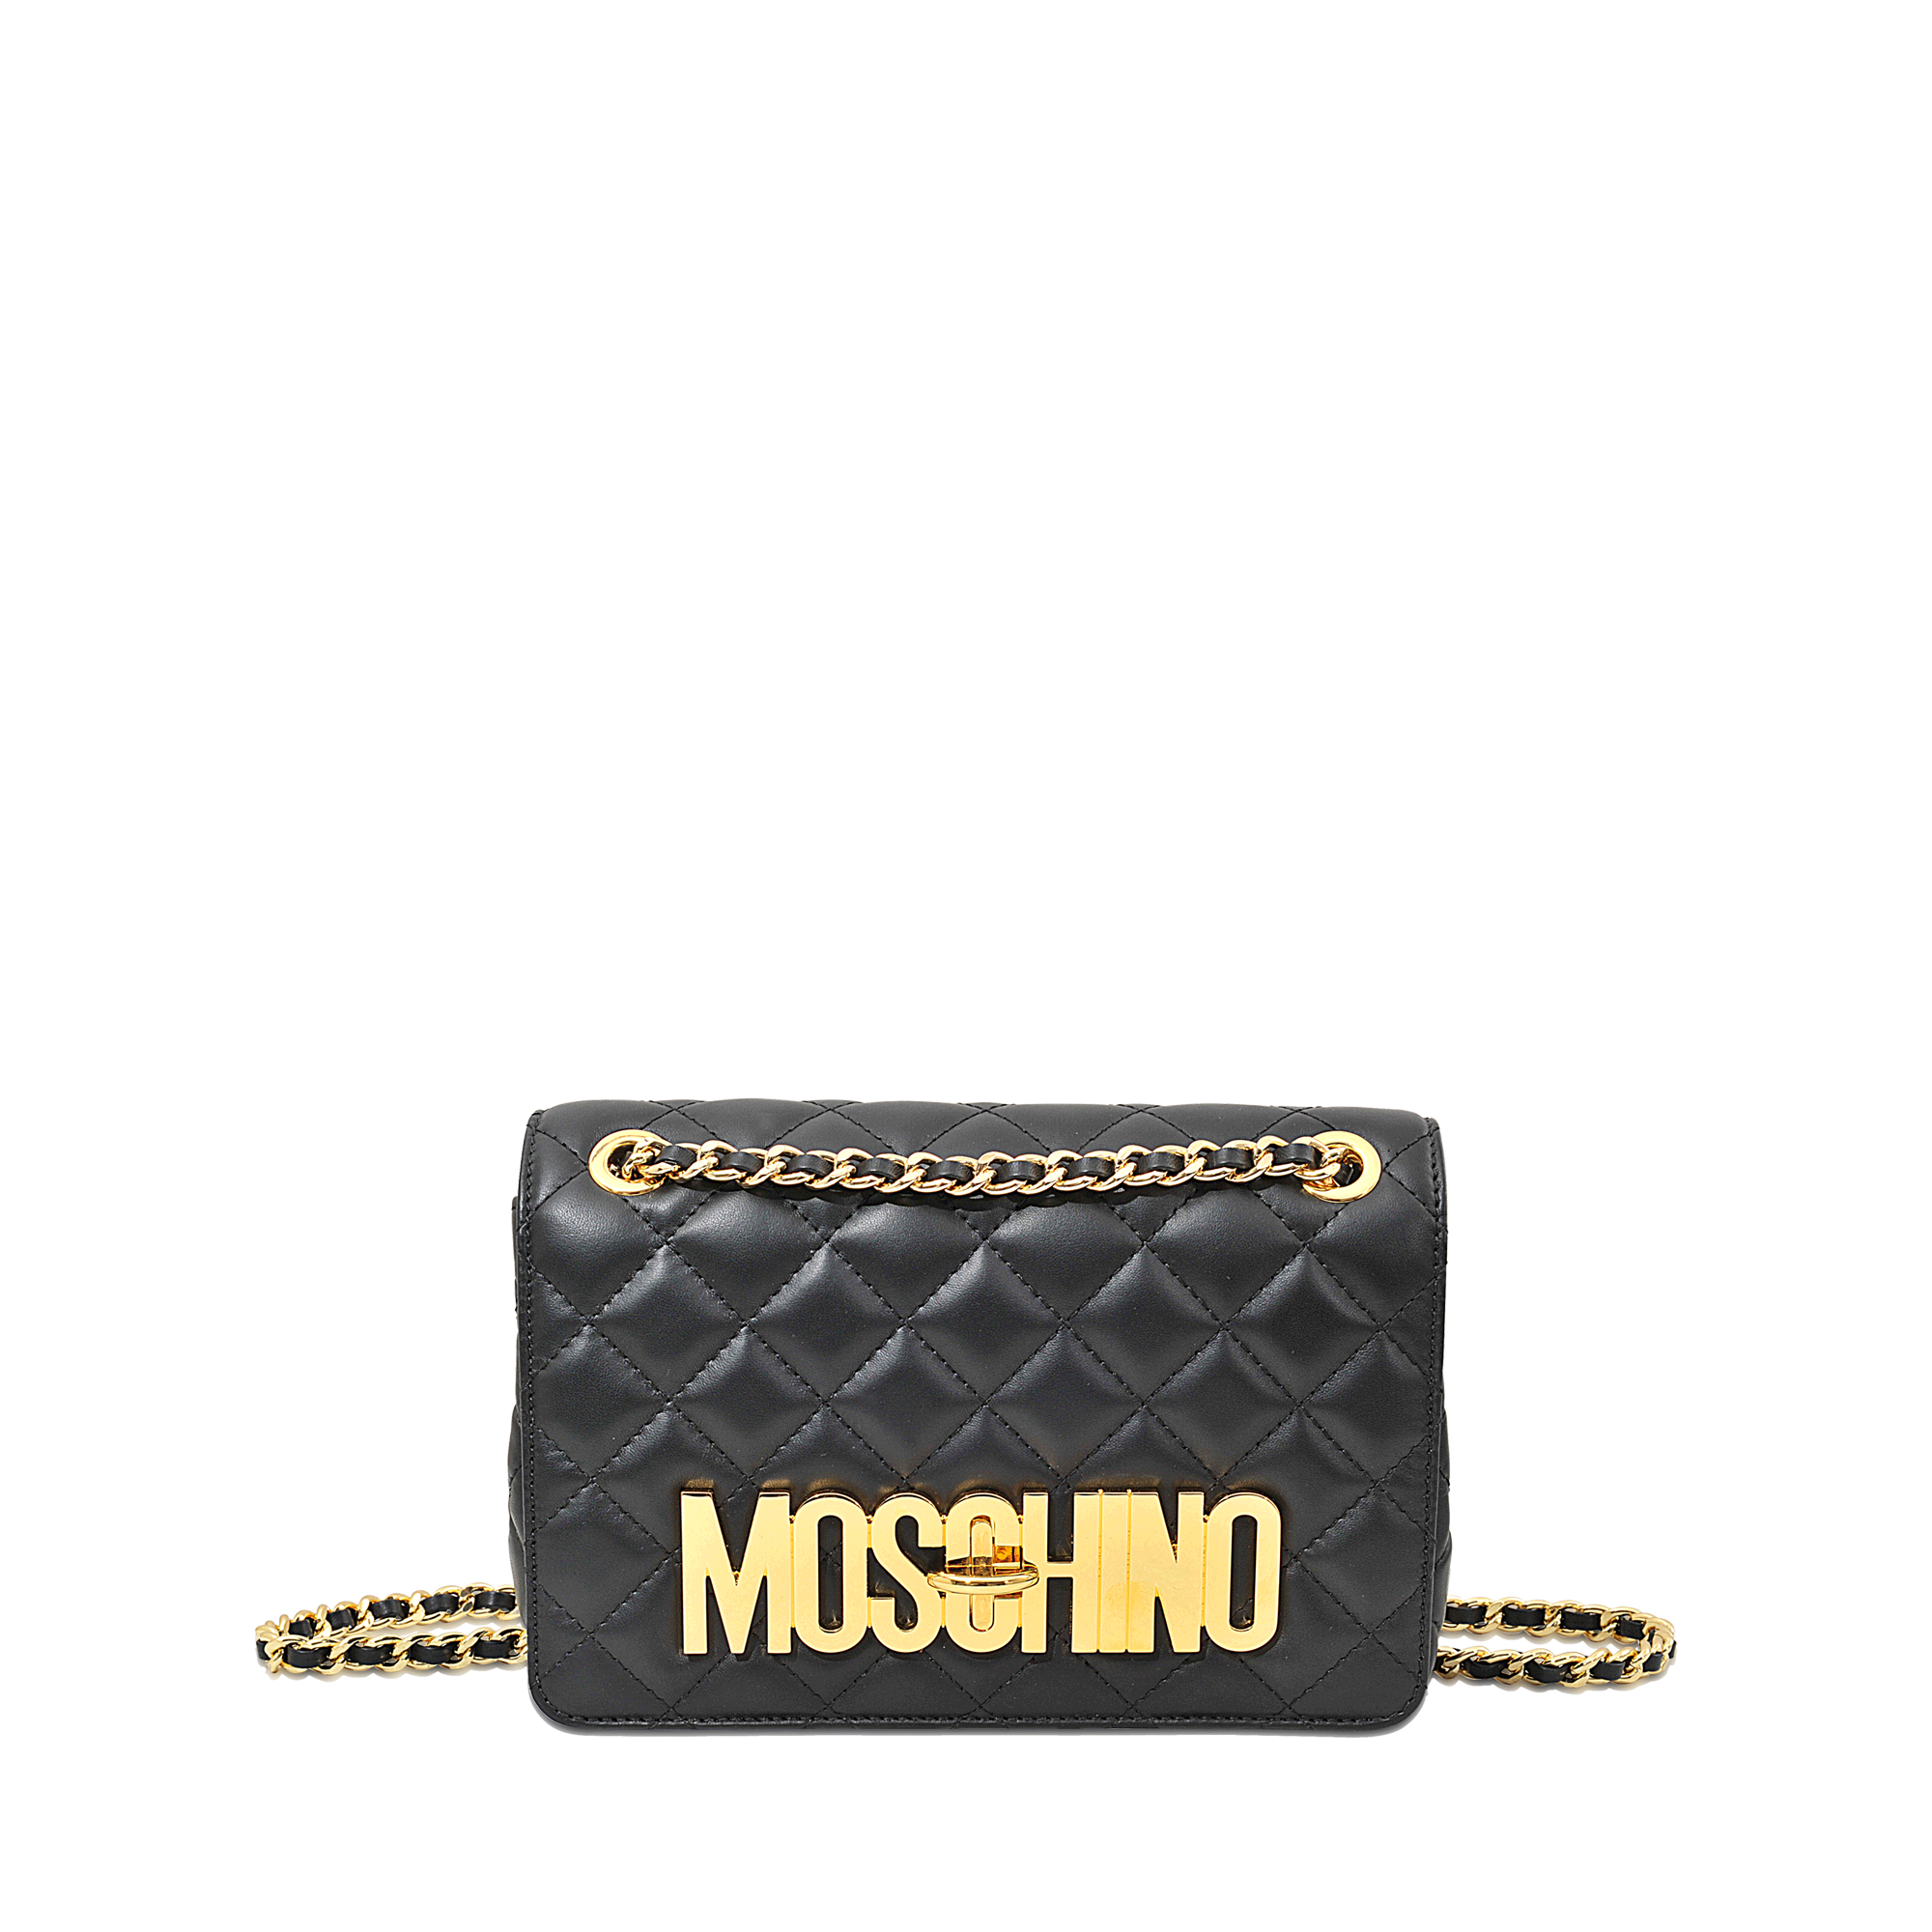 Authentic Vintage Moschino Quilt Heart Bag   Bags, Moschino